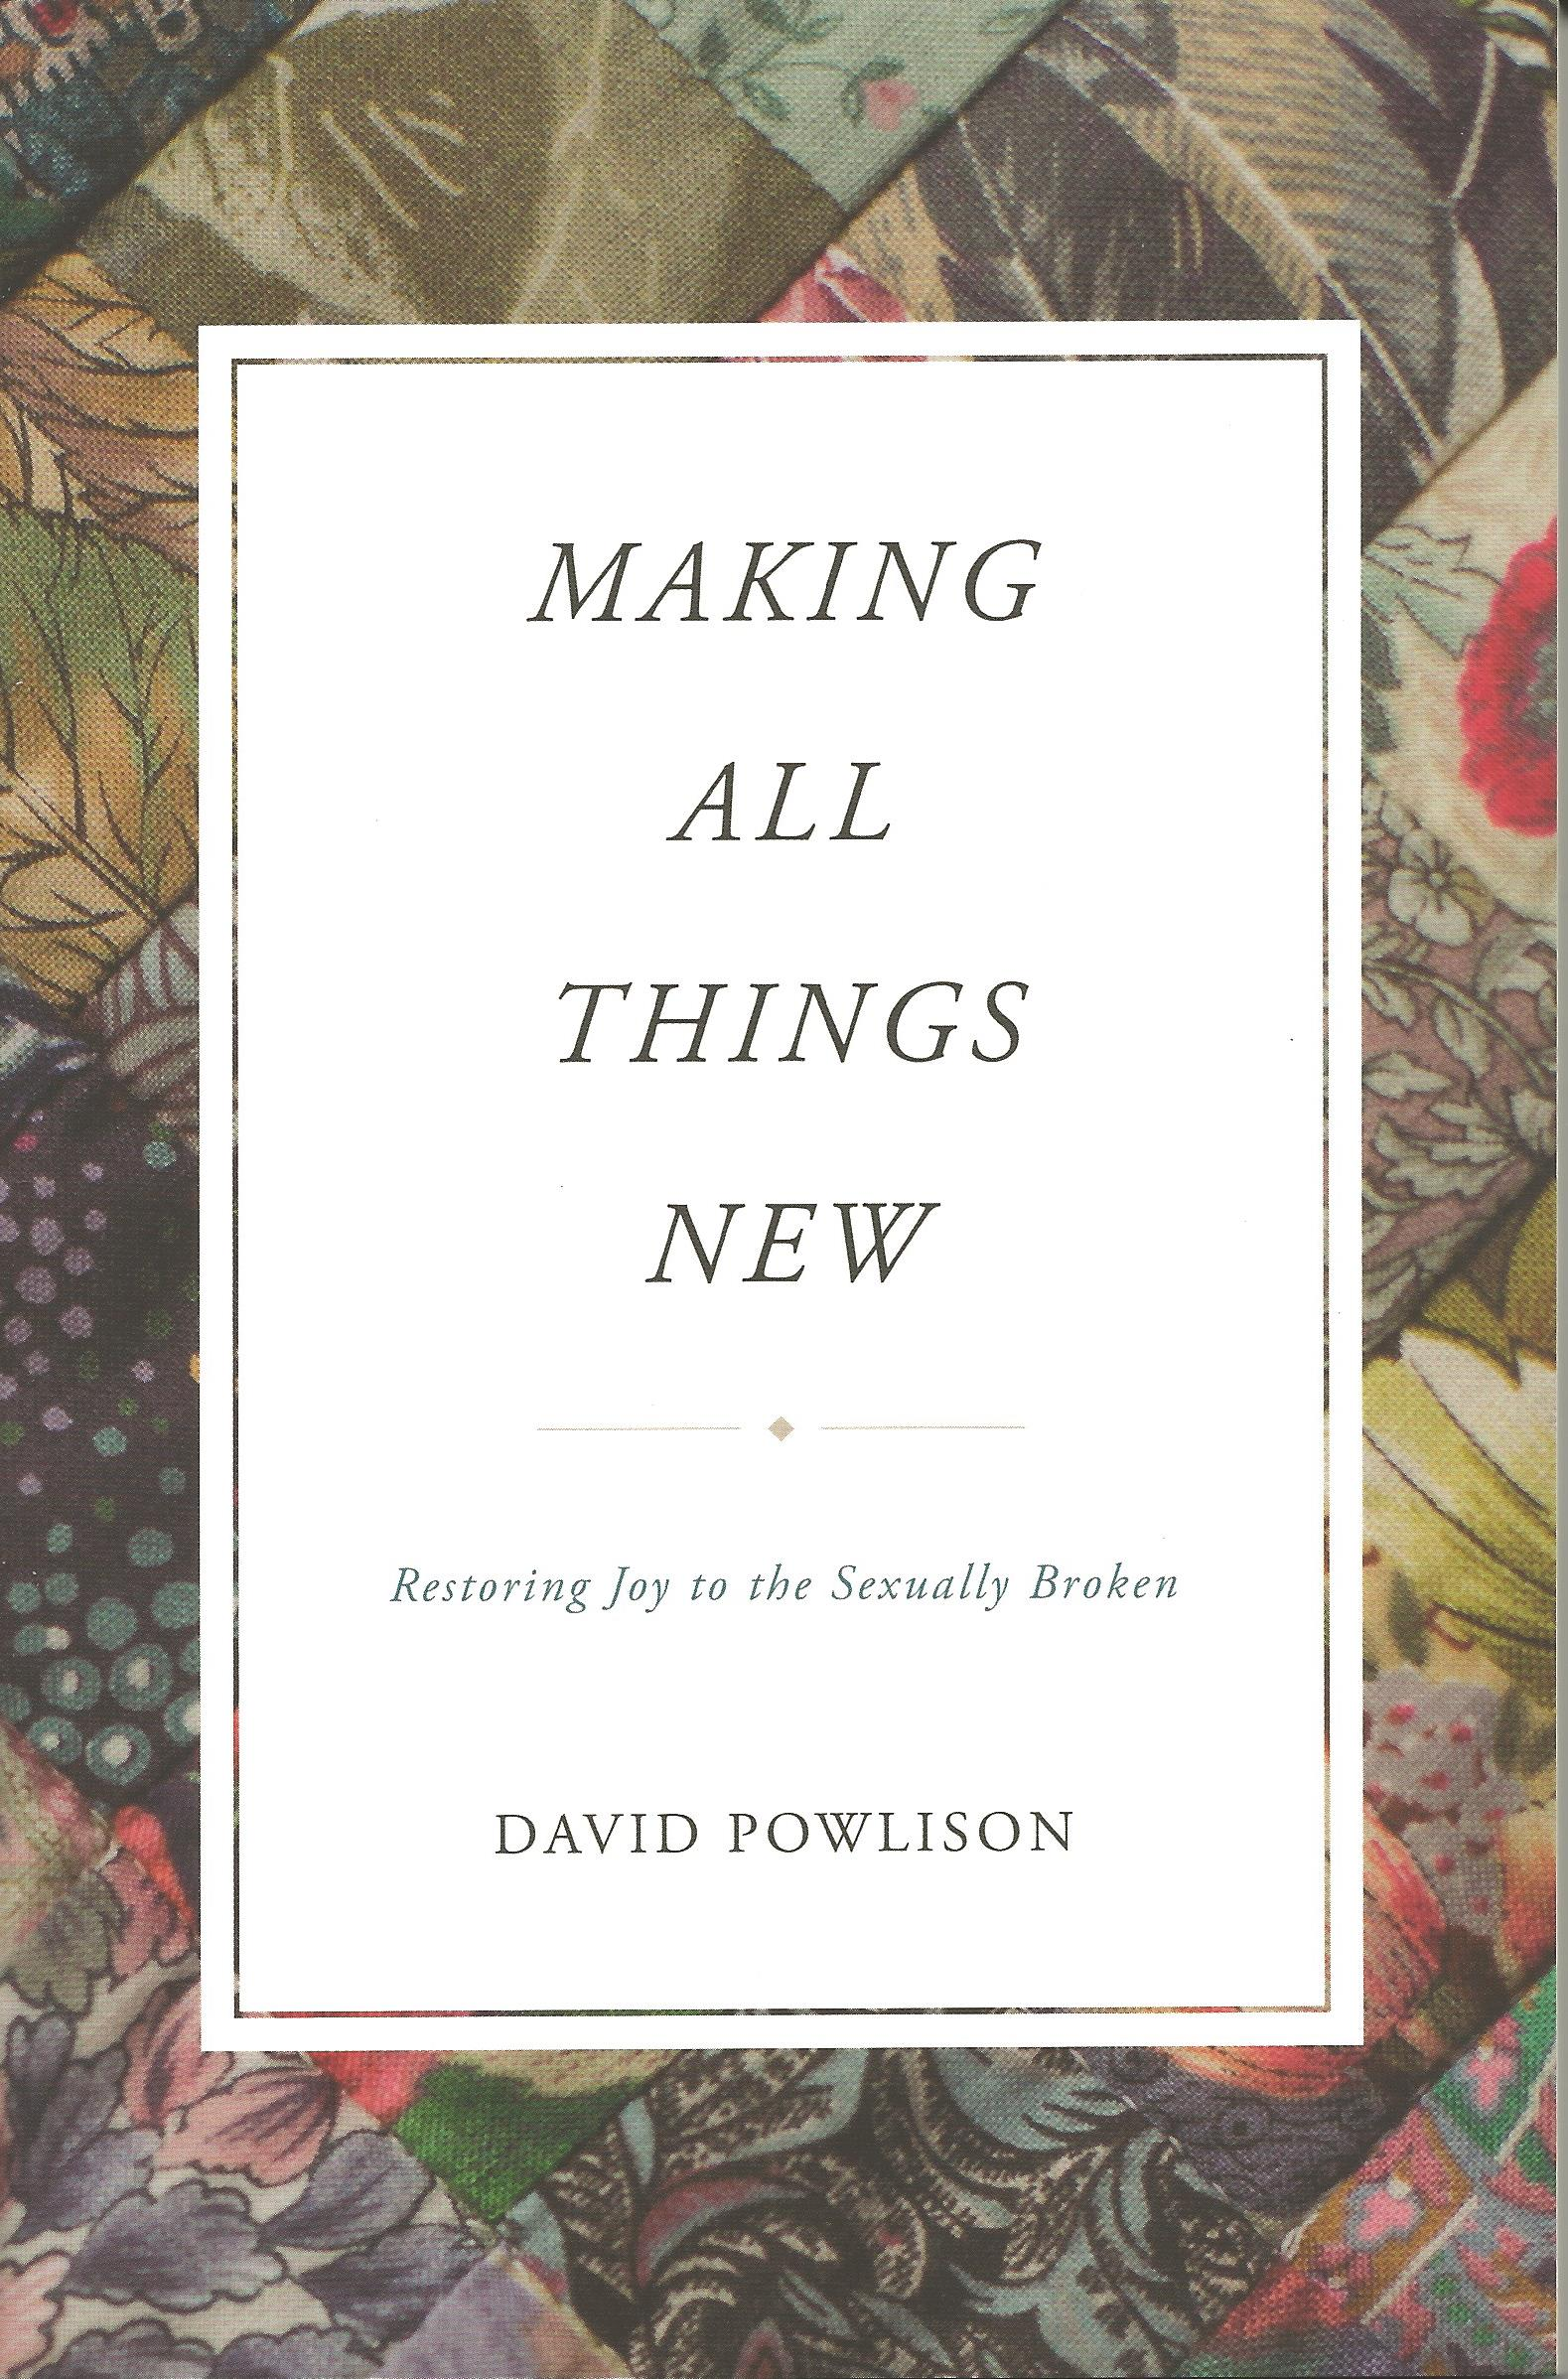 MAKING ALL THINGS NEW David Powlison